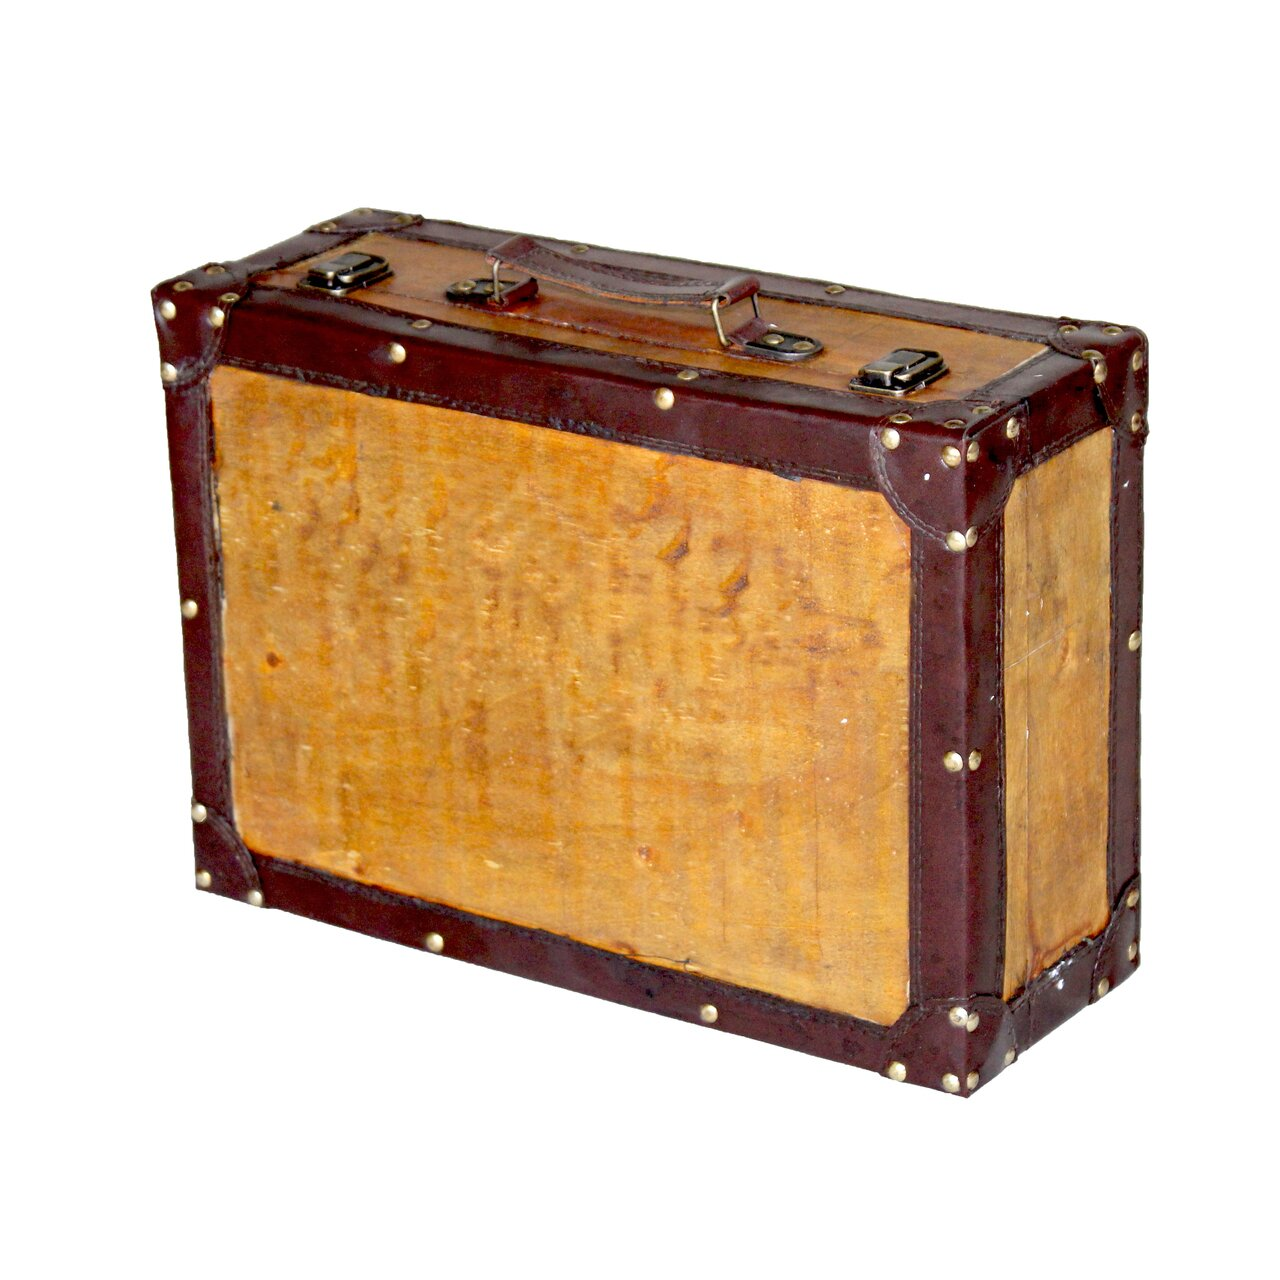 Quickway Imports Old Vintage Suitcase Trunk & Reviews | Wayfair